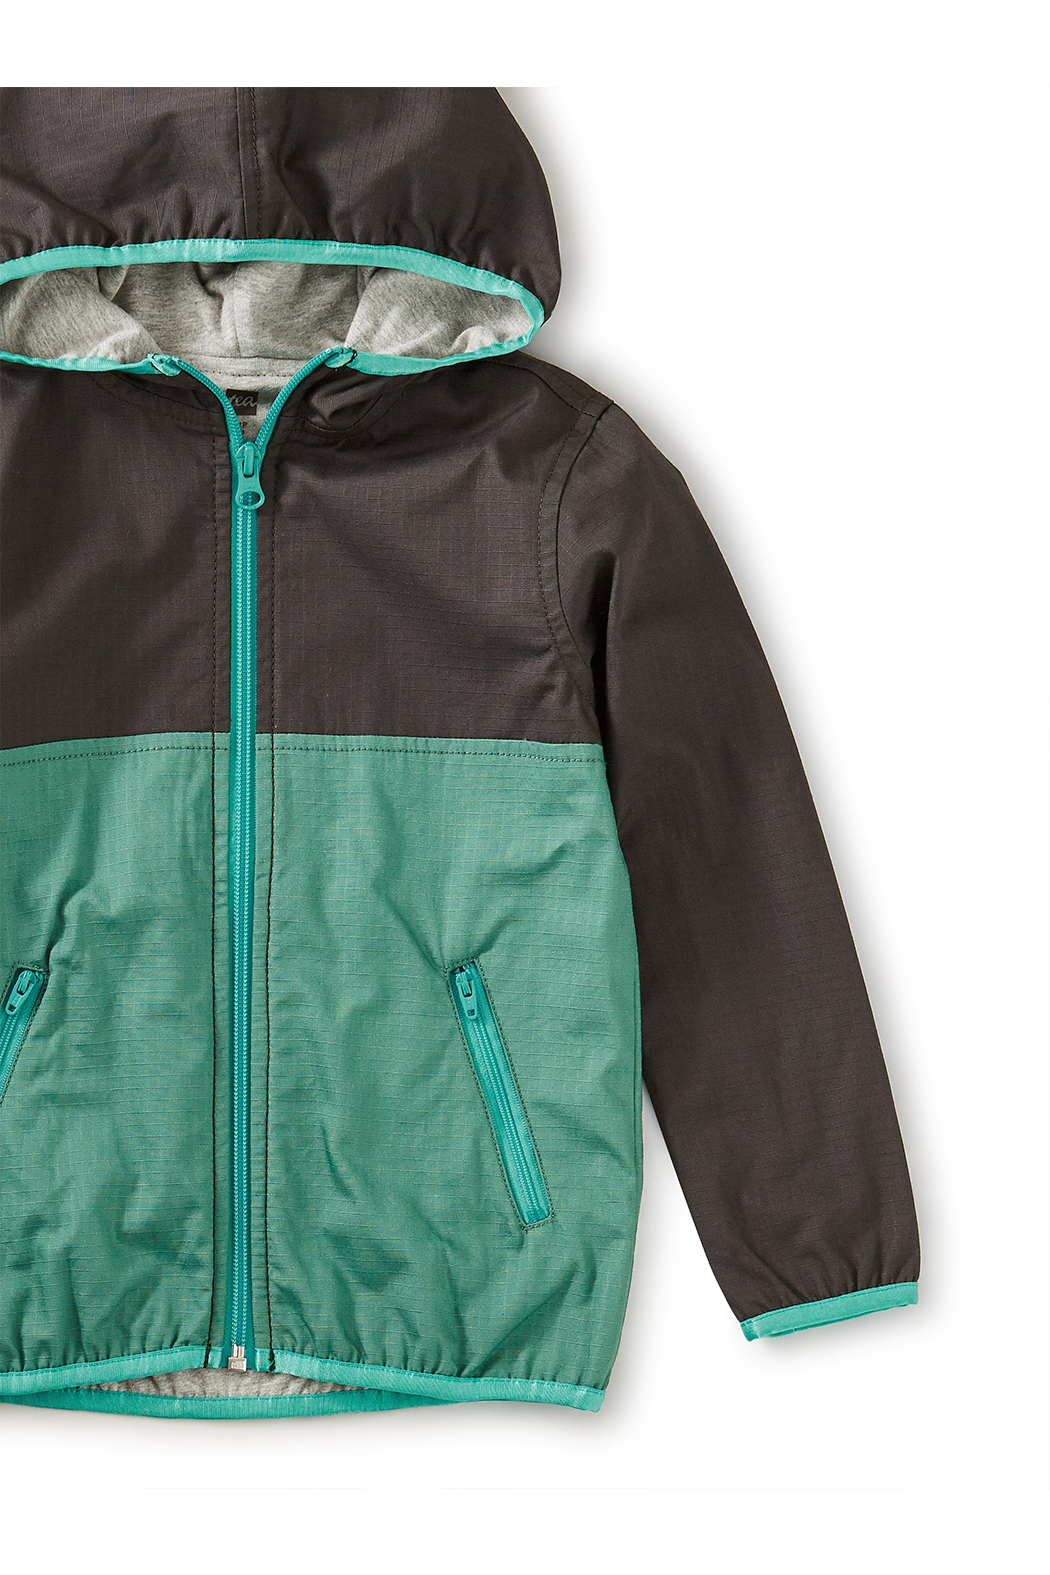 Tea Collection Lined Ripstop Jacket - Front Full Image